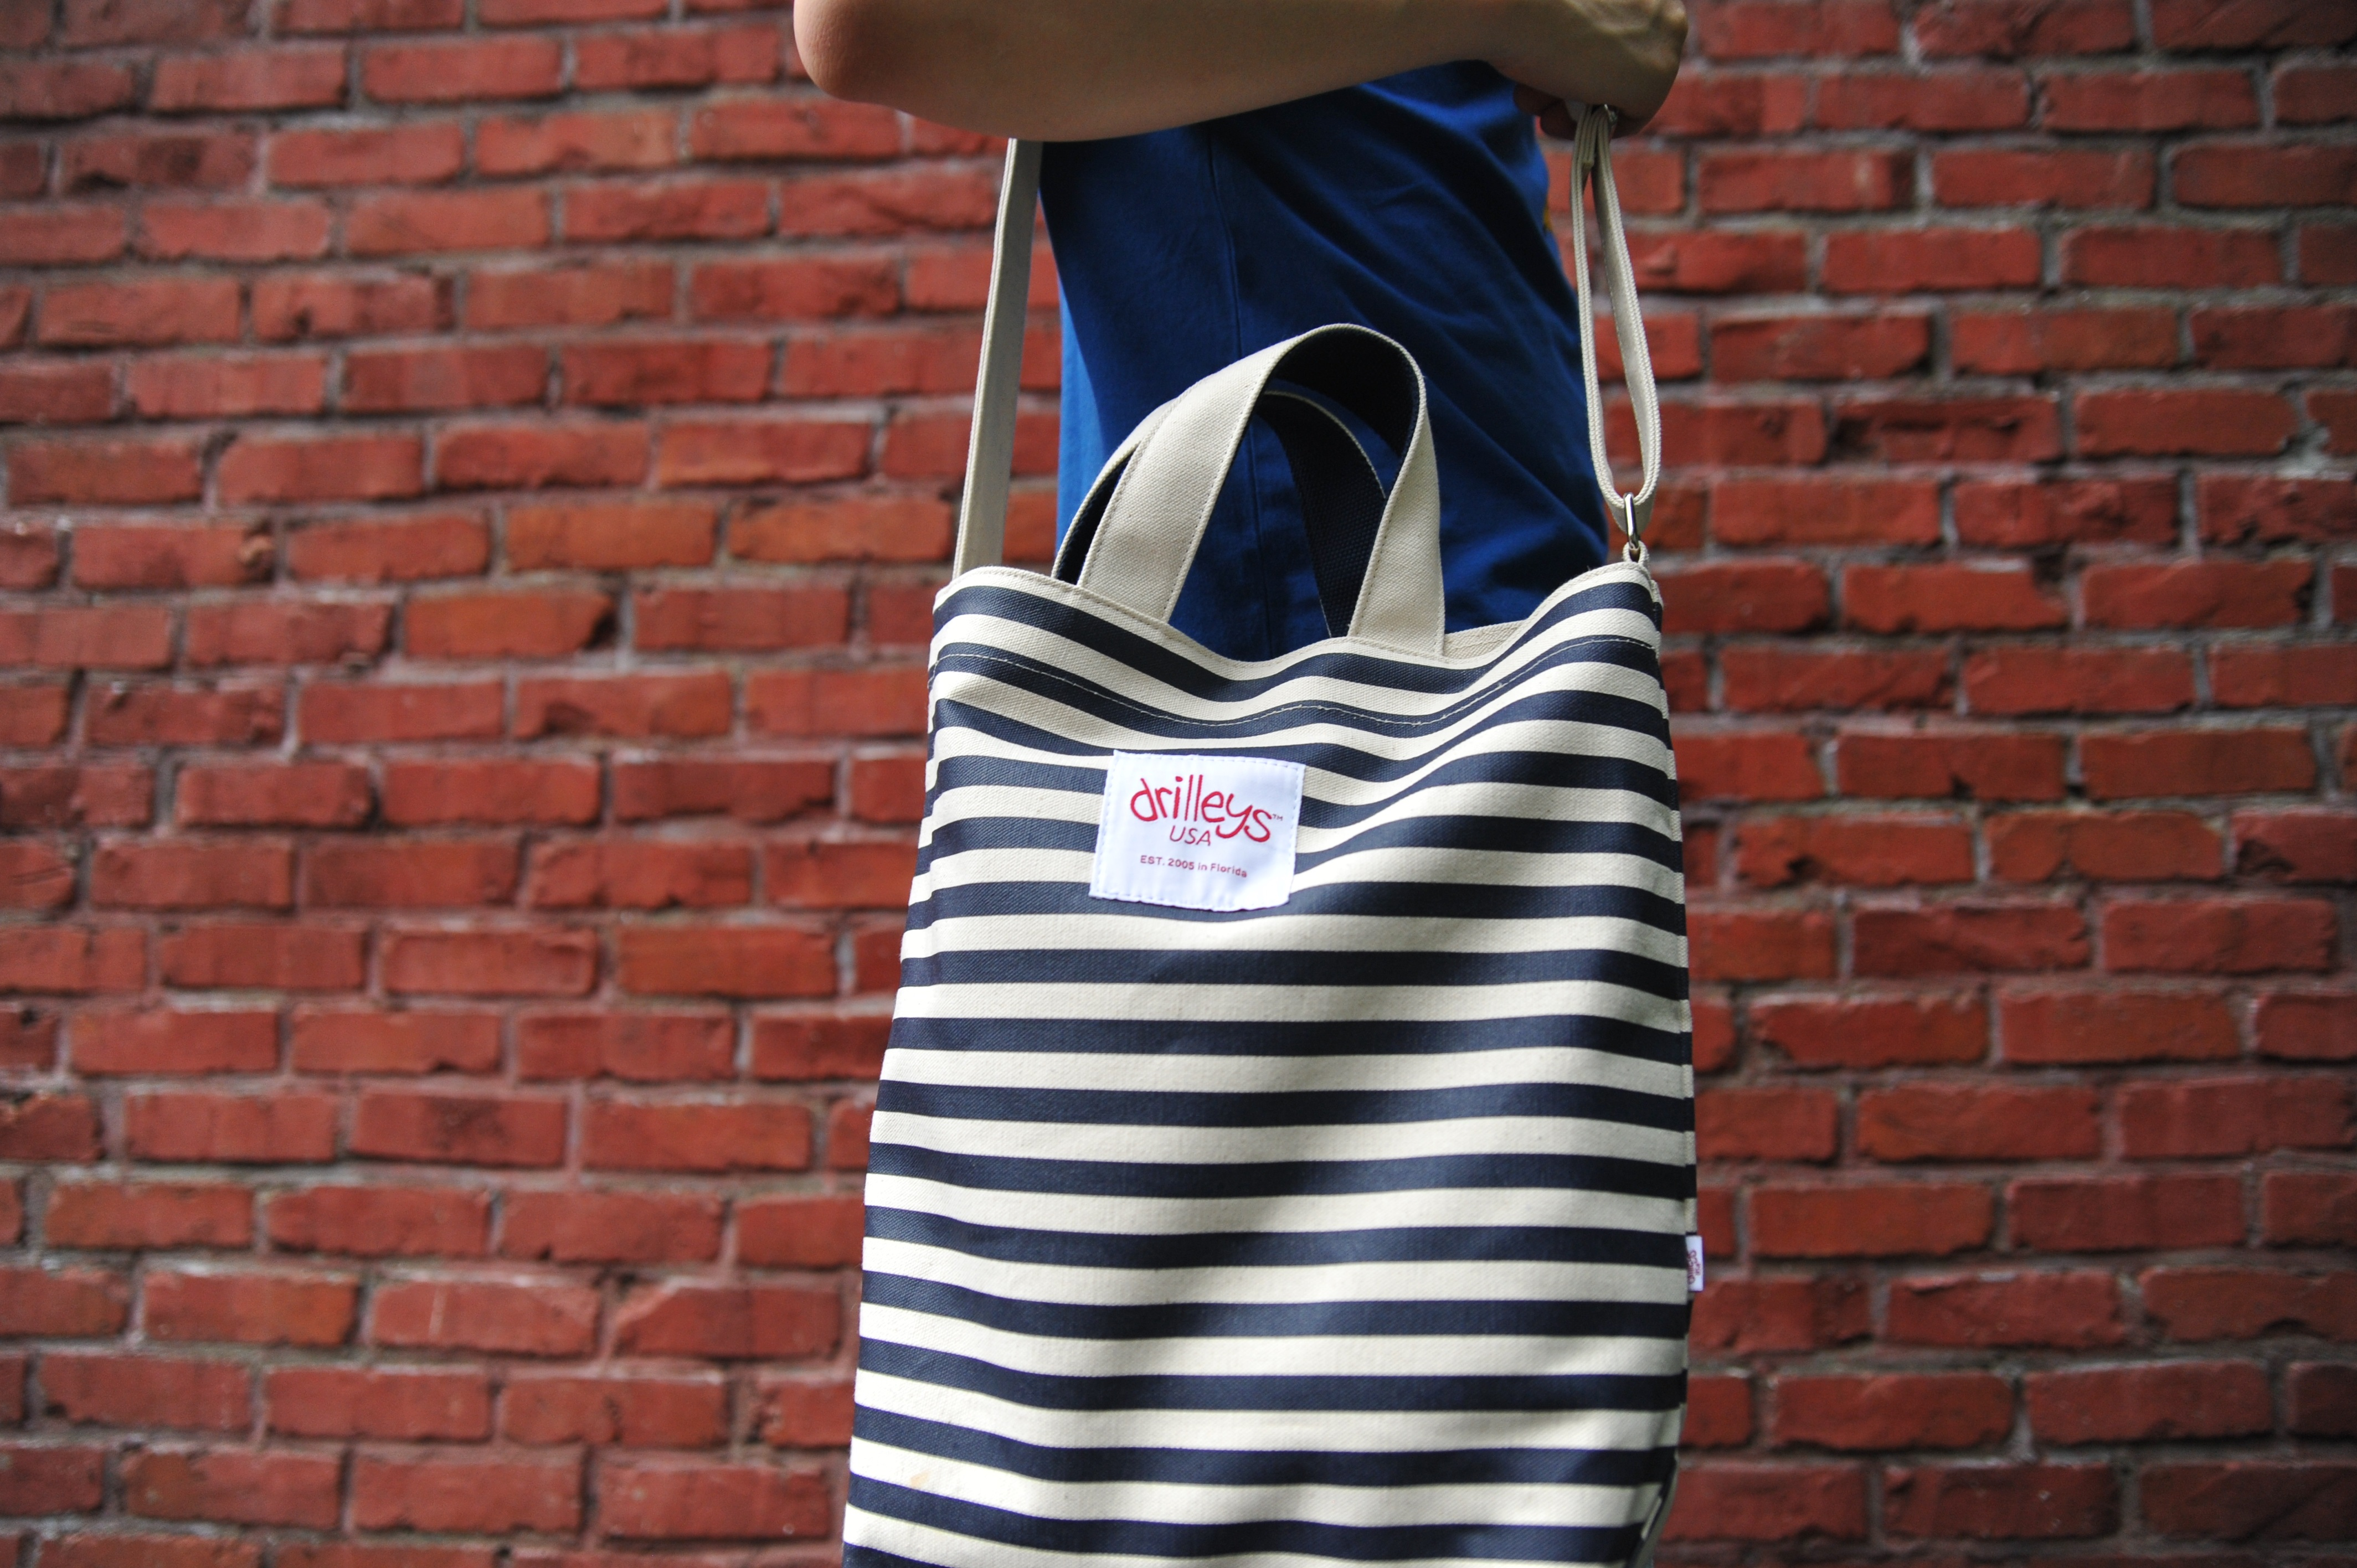 Vogatha and Drilley's Collaboration Eco Tote Bags available now!